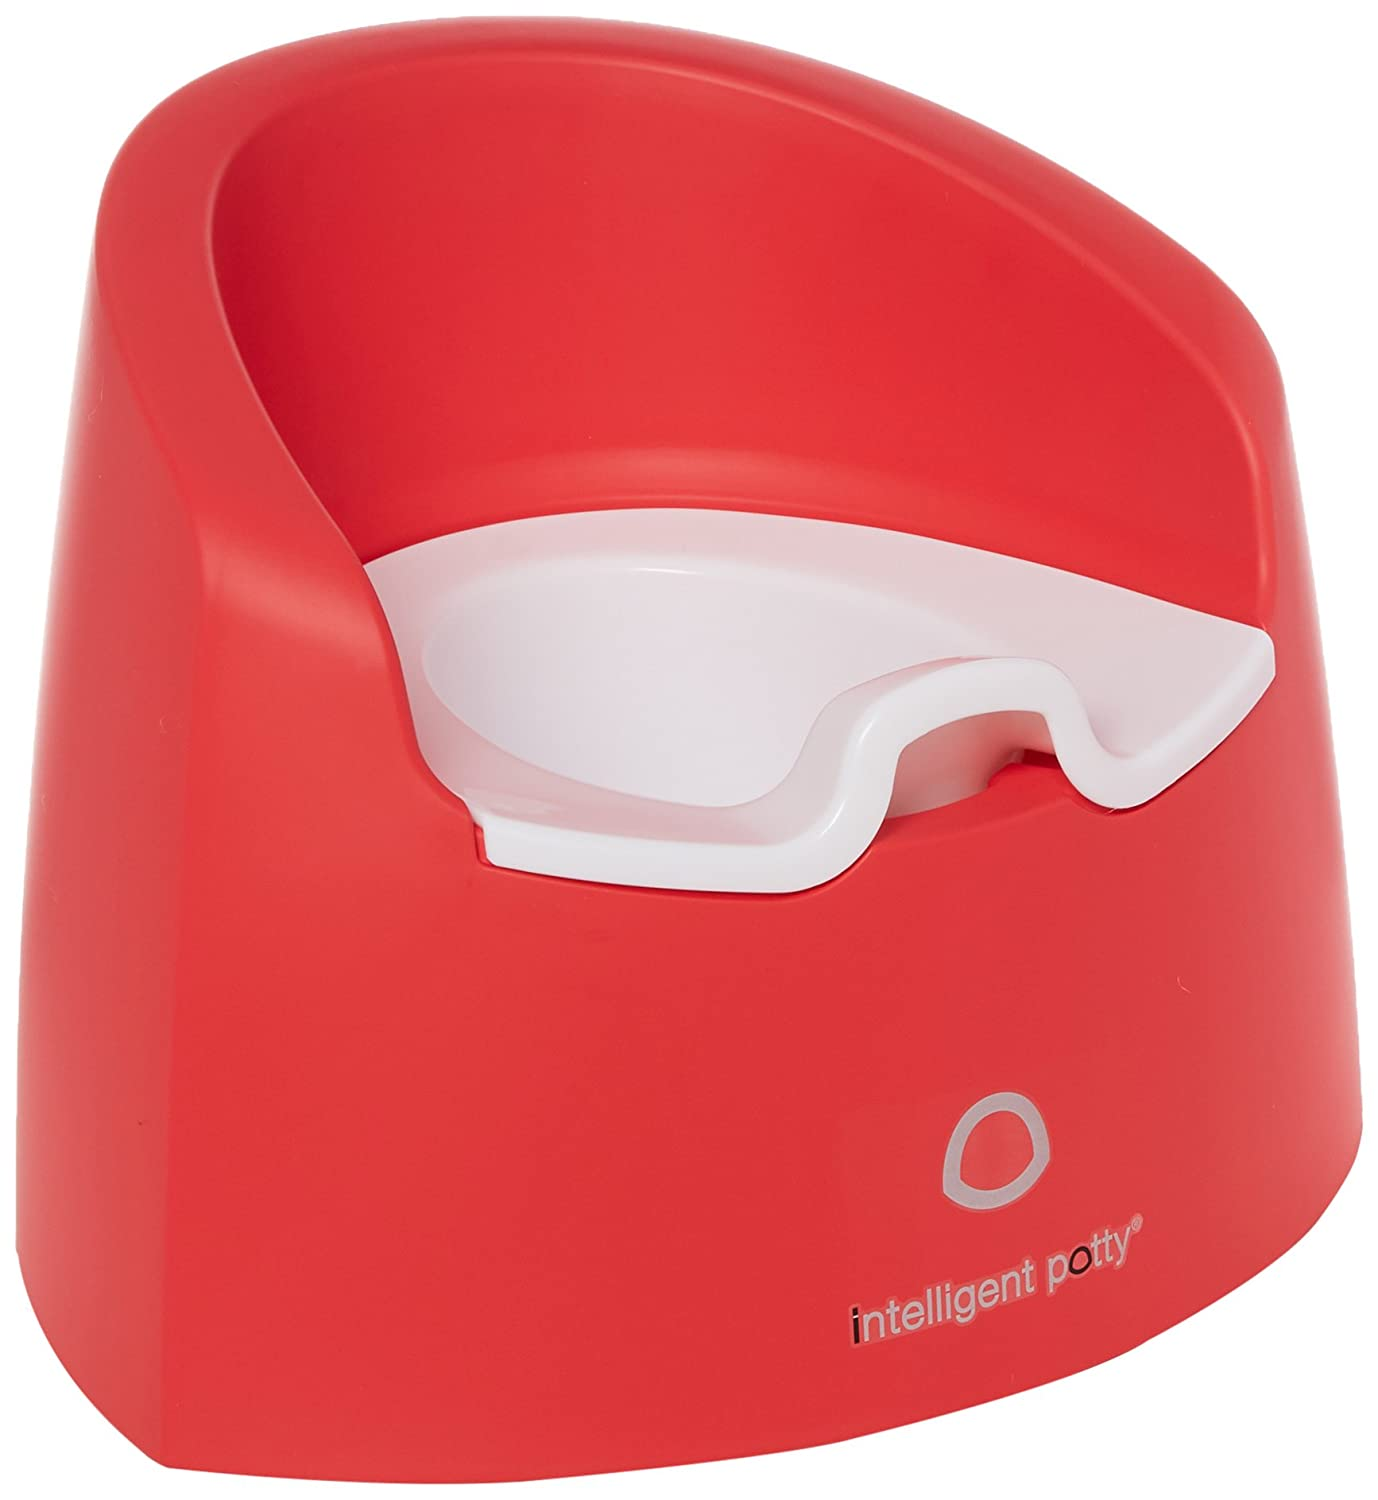 Intelligent Potty with Voice Recording for Potty Training Babies, Red 198004